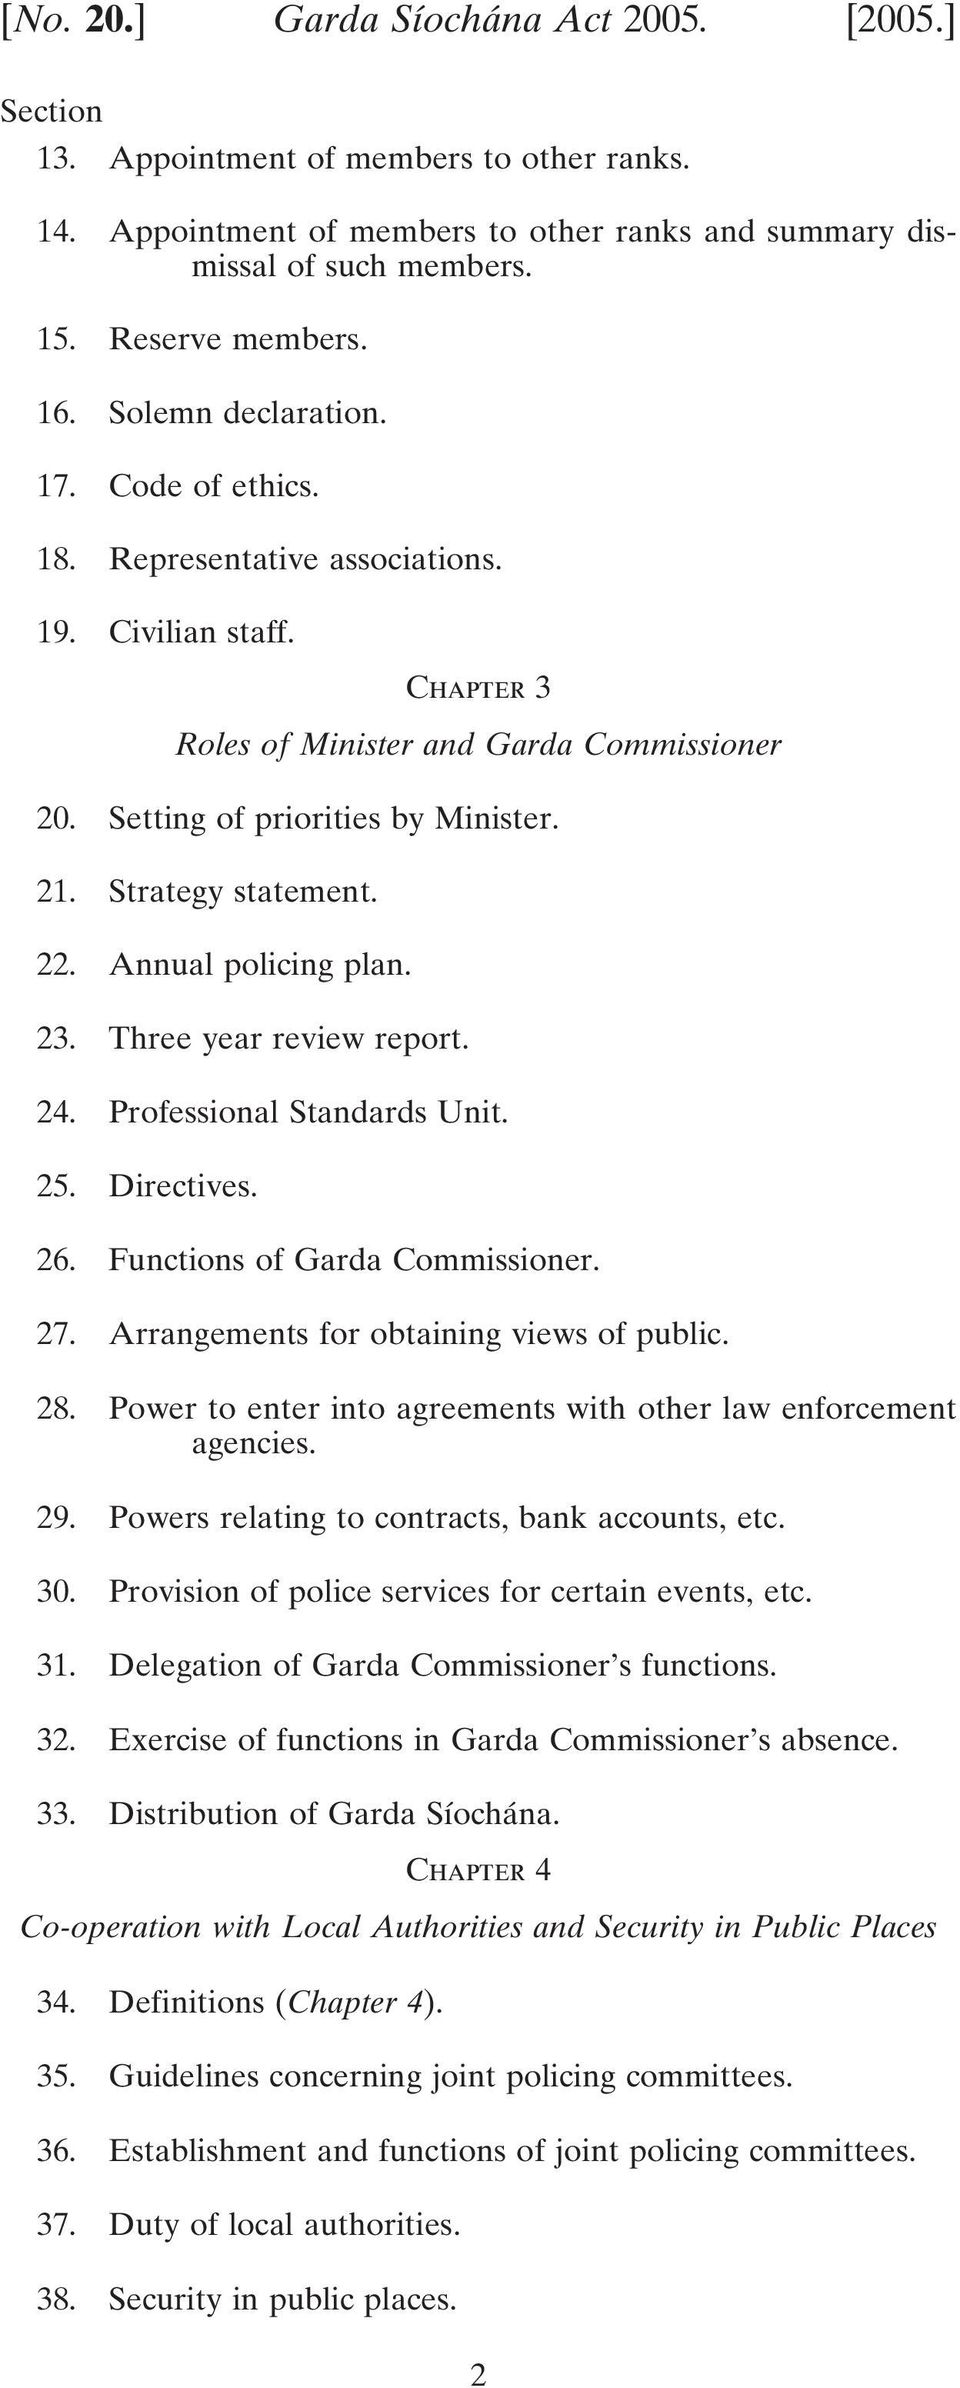 Strategy statement. 22. Annual policing plan. 23. Three year review report. 24. Professional Standards Unit. 25. Directives. 26. Functions of Garda Commissioner. 27.